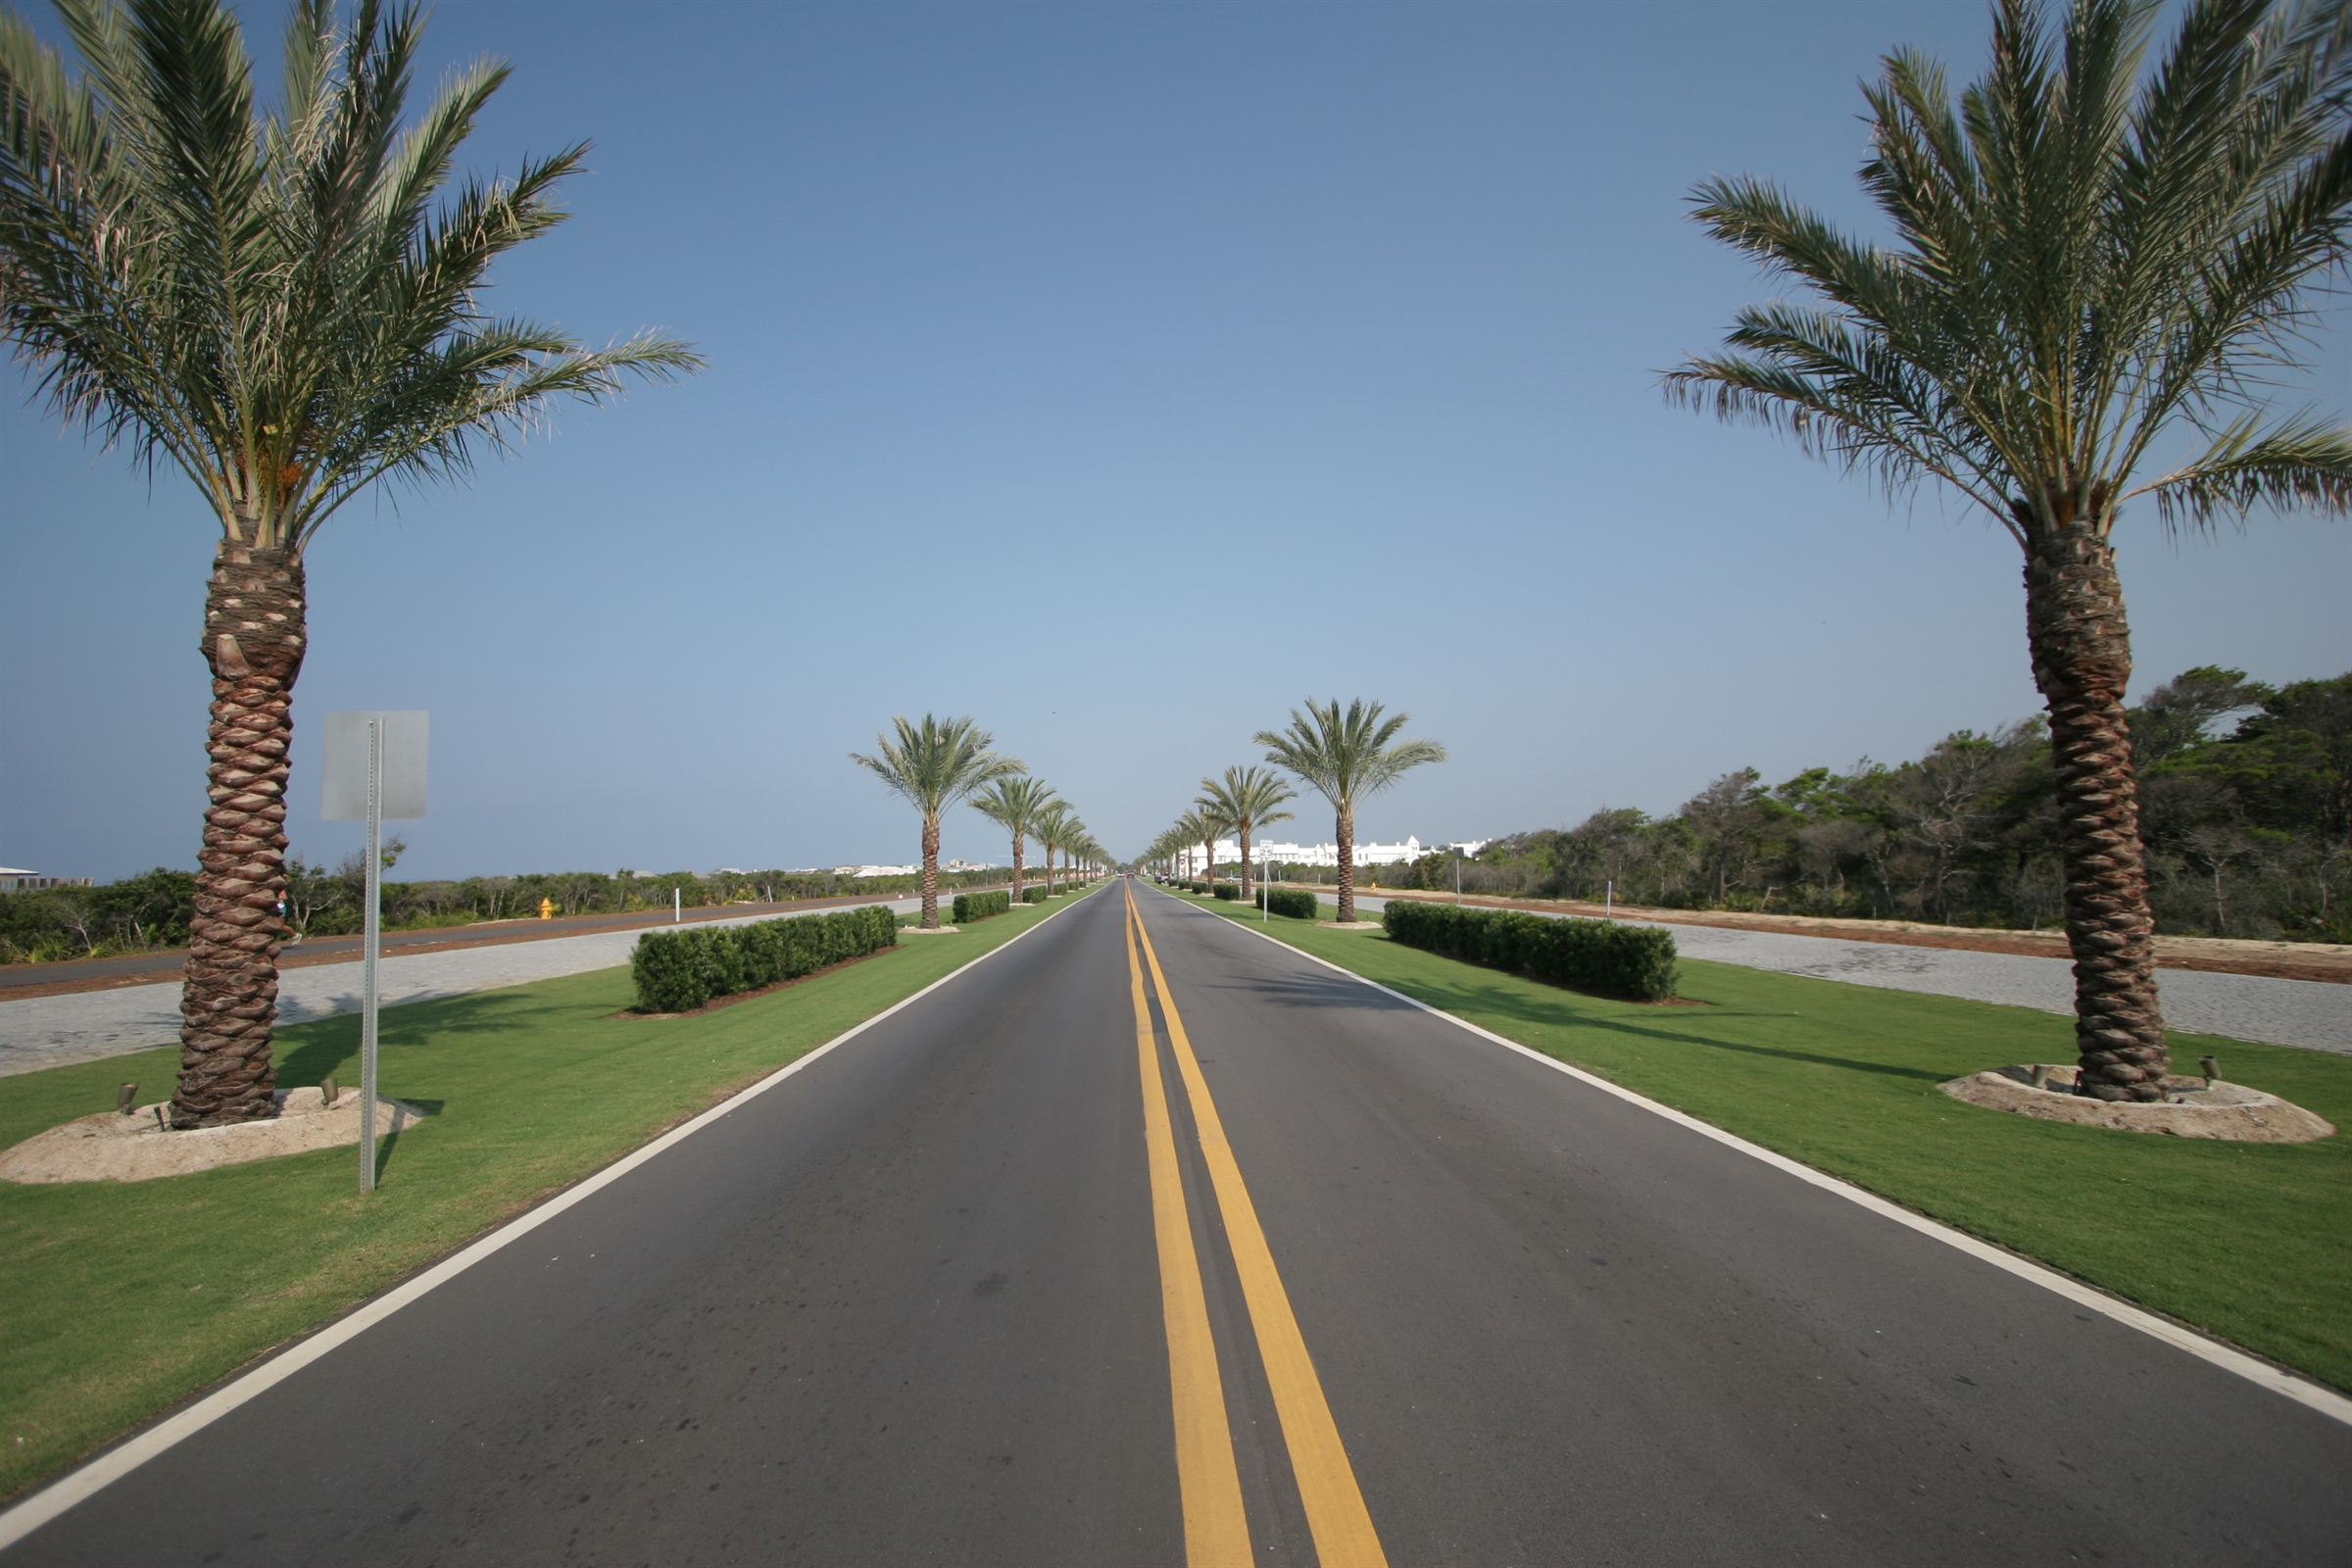 Picture of Florida Strategic Intermodal System